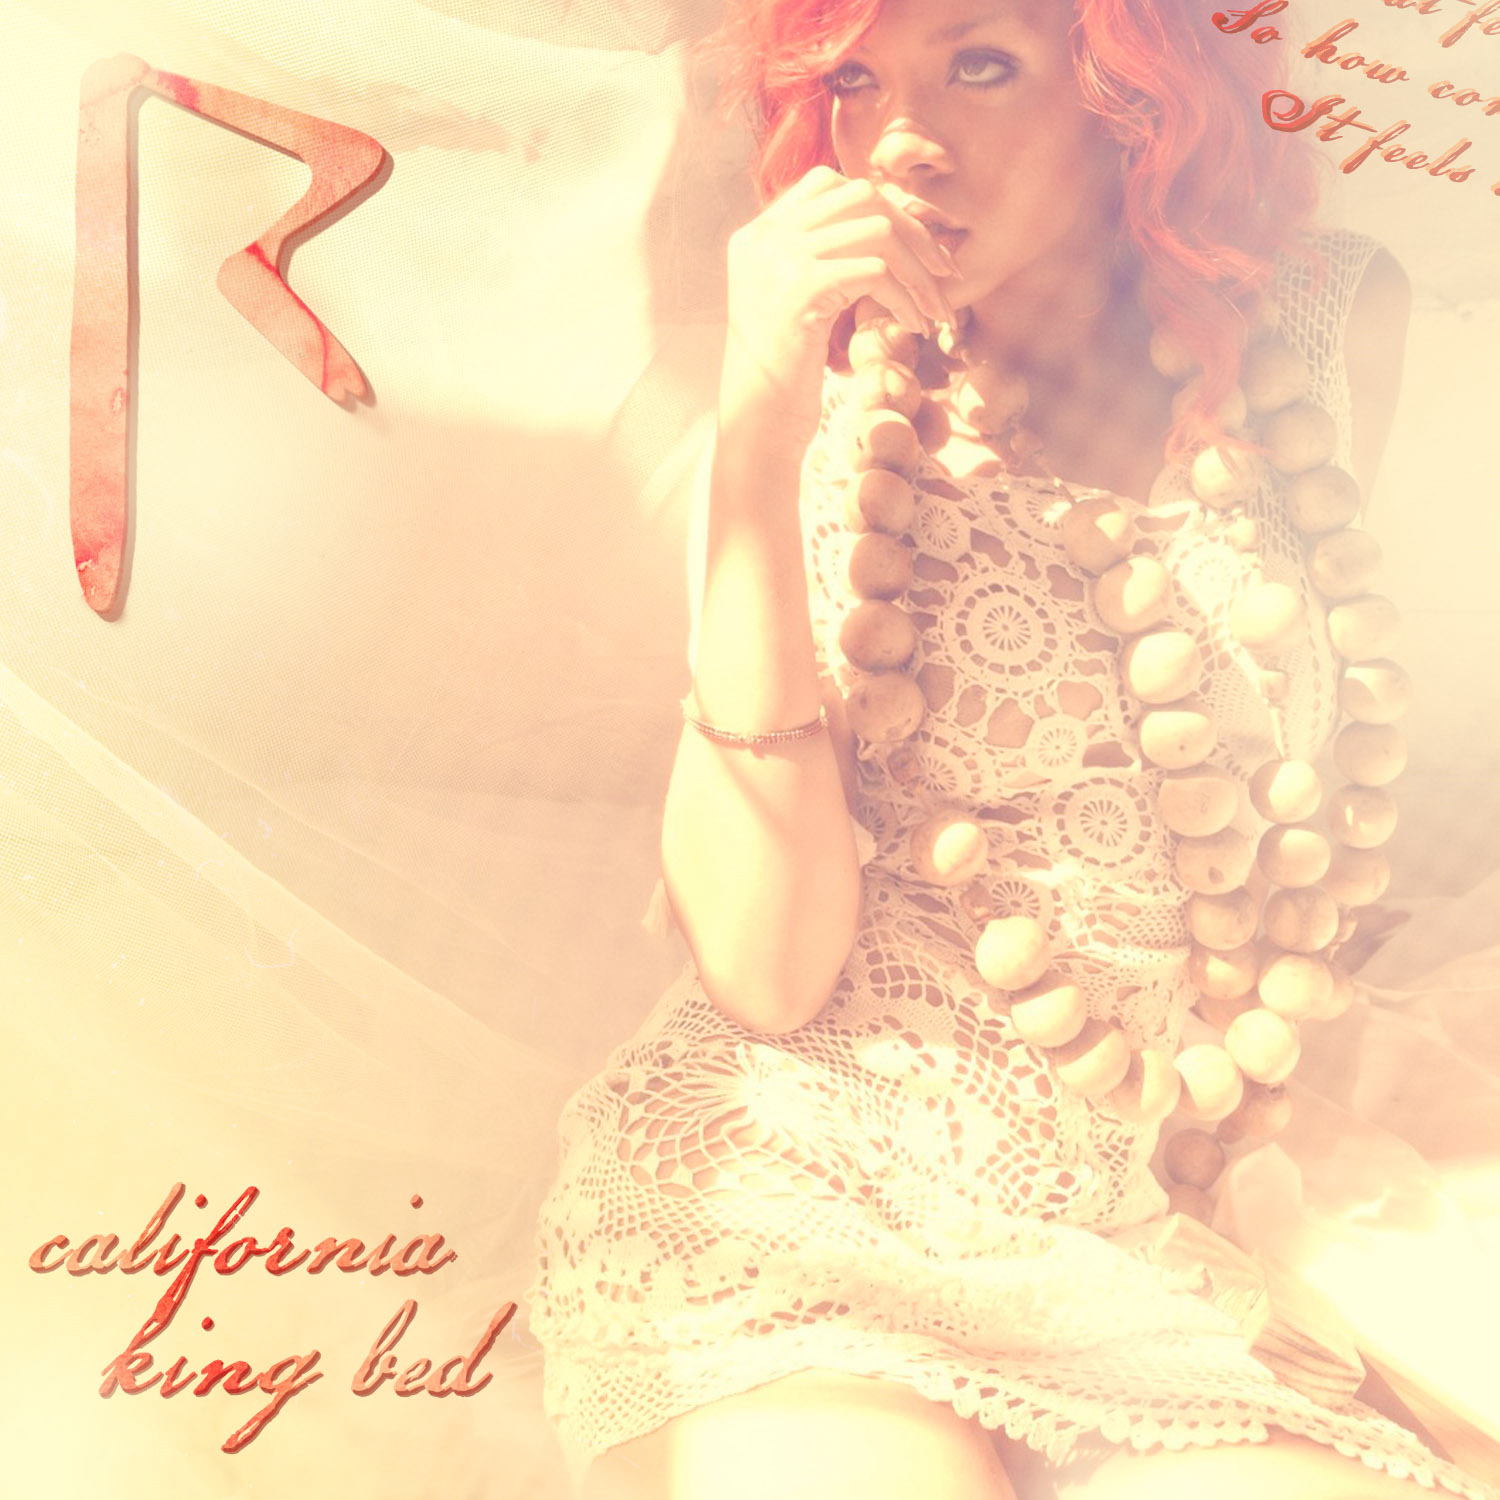 http://4.bp.blogspot.com/-53q0fPbyF7A/UFY3C6XgYnI/AAAAAAAAAjk/OZ2fbt7XwLk/s1600/rihanna-california-king-bed-official-single-cover.jpg